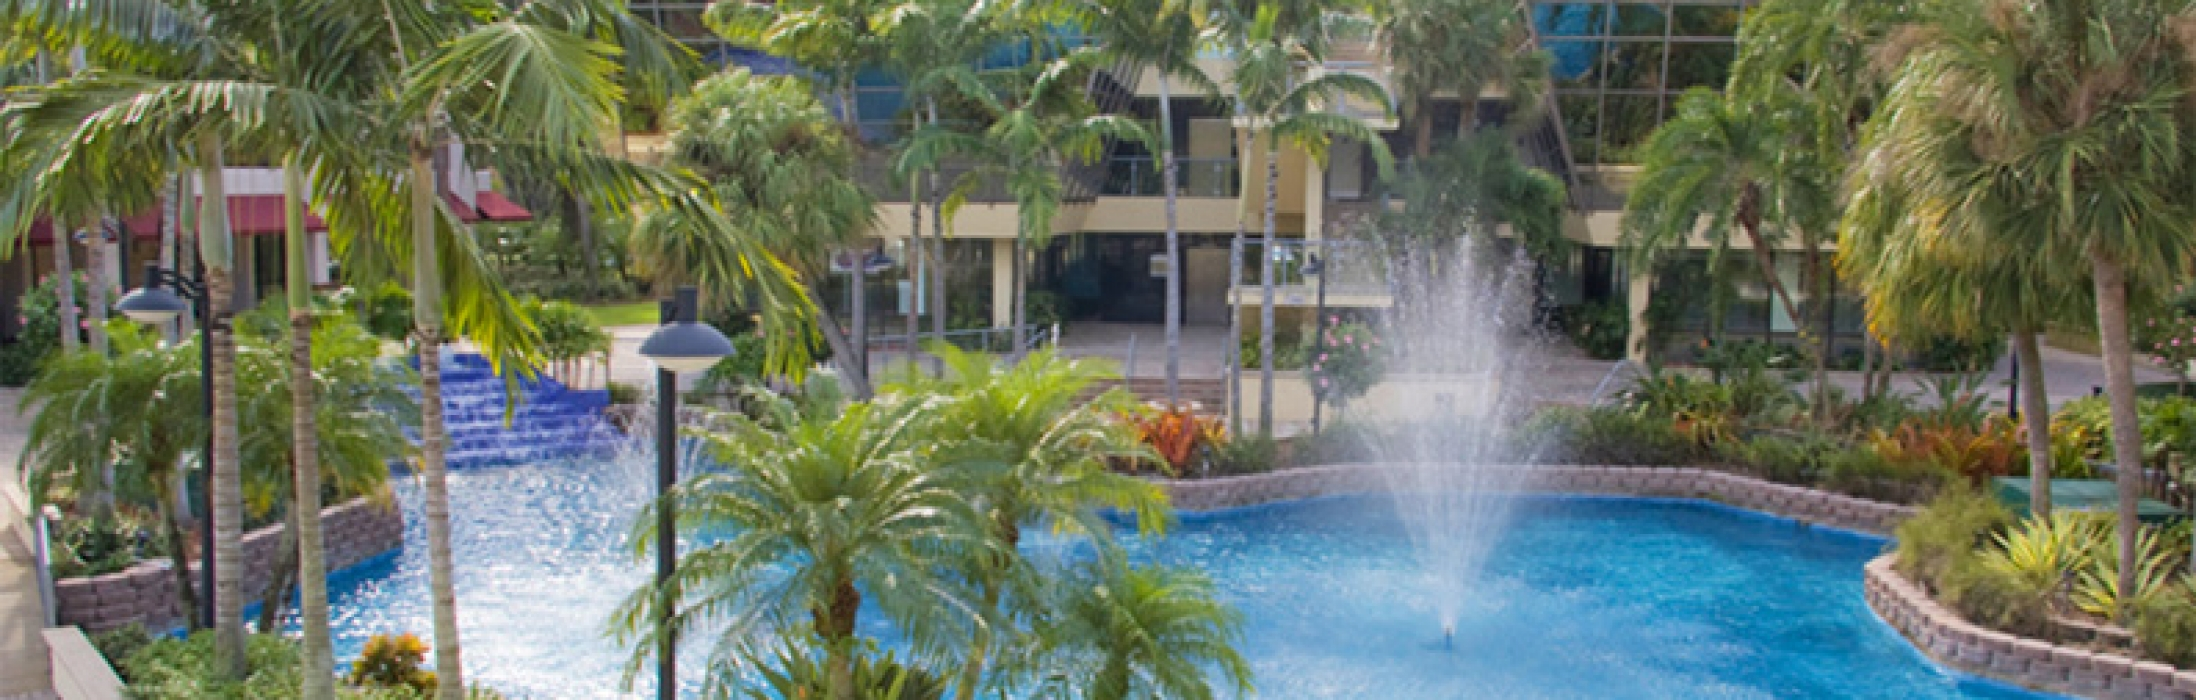 Fountains Center – Boca Raton, FL